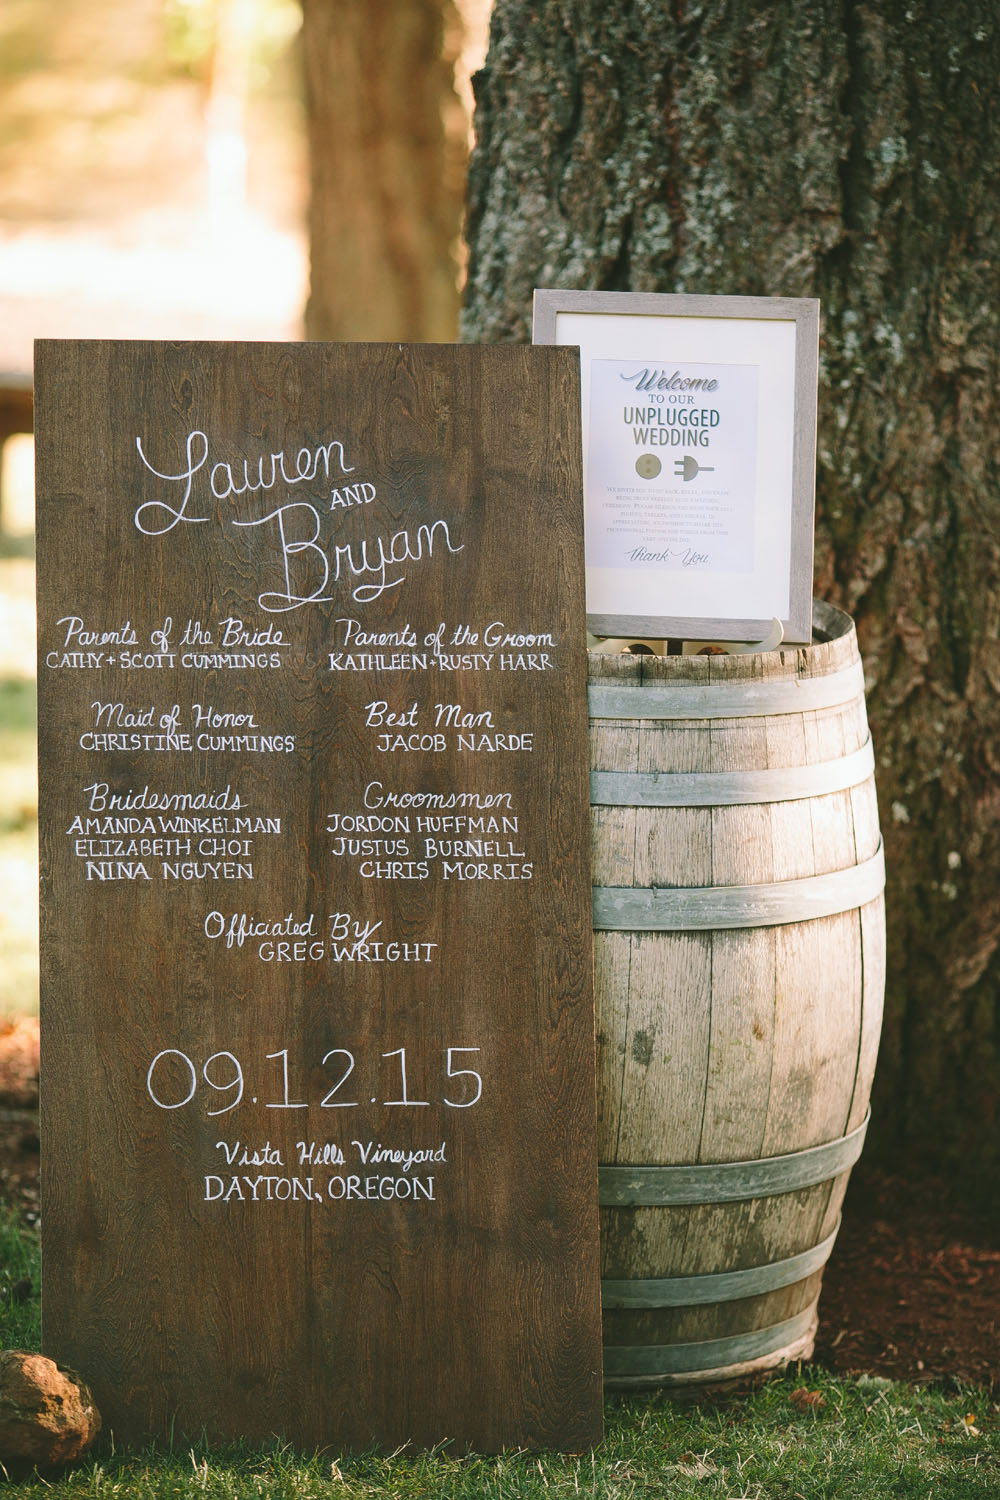 234LaurenBryan_Wedding.JPG